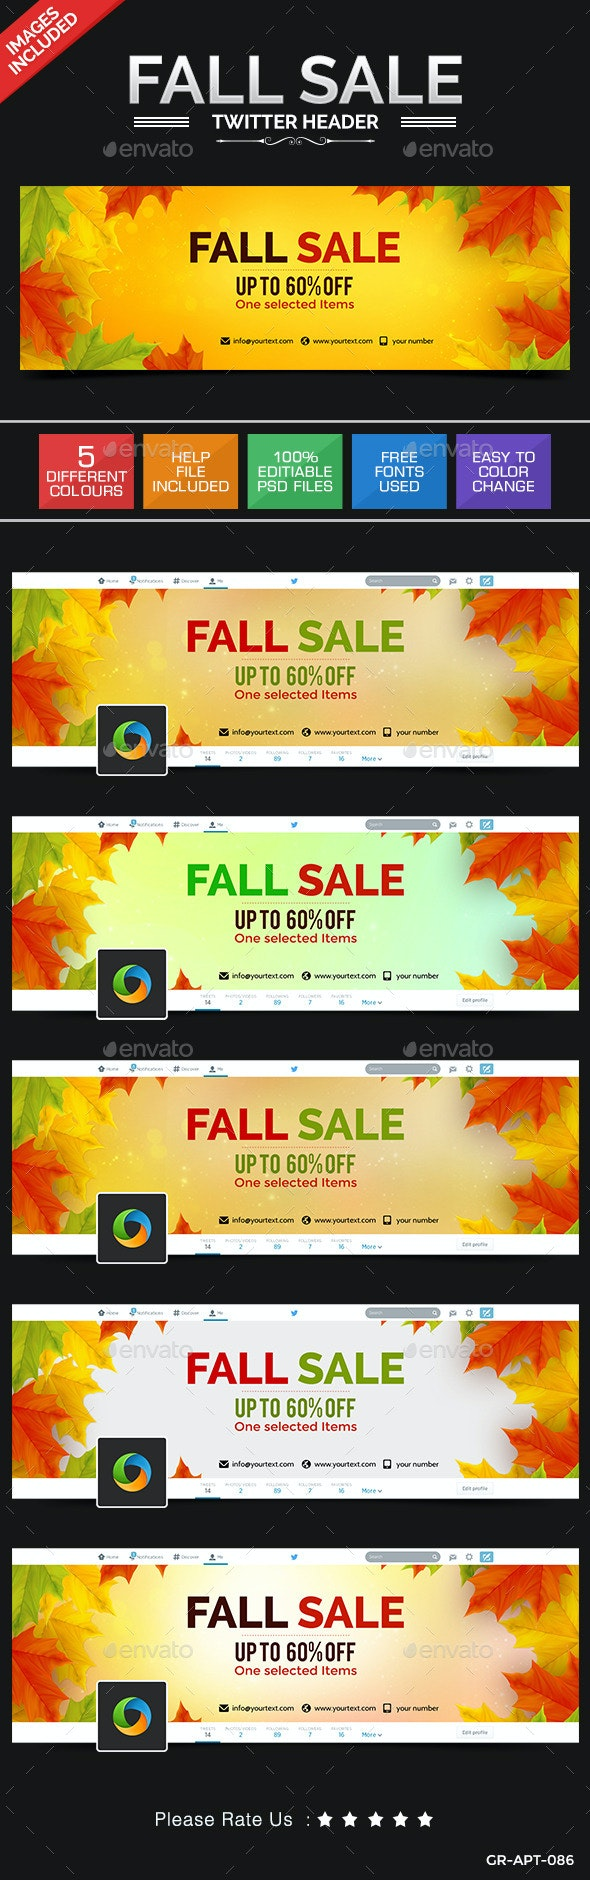 Fall Sale Twitter Header - Twitter Social Media